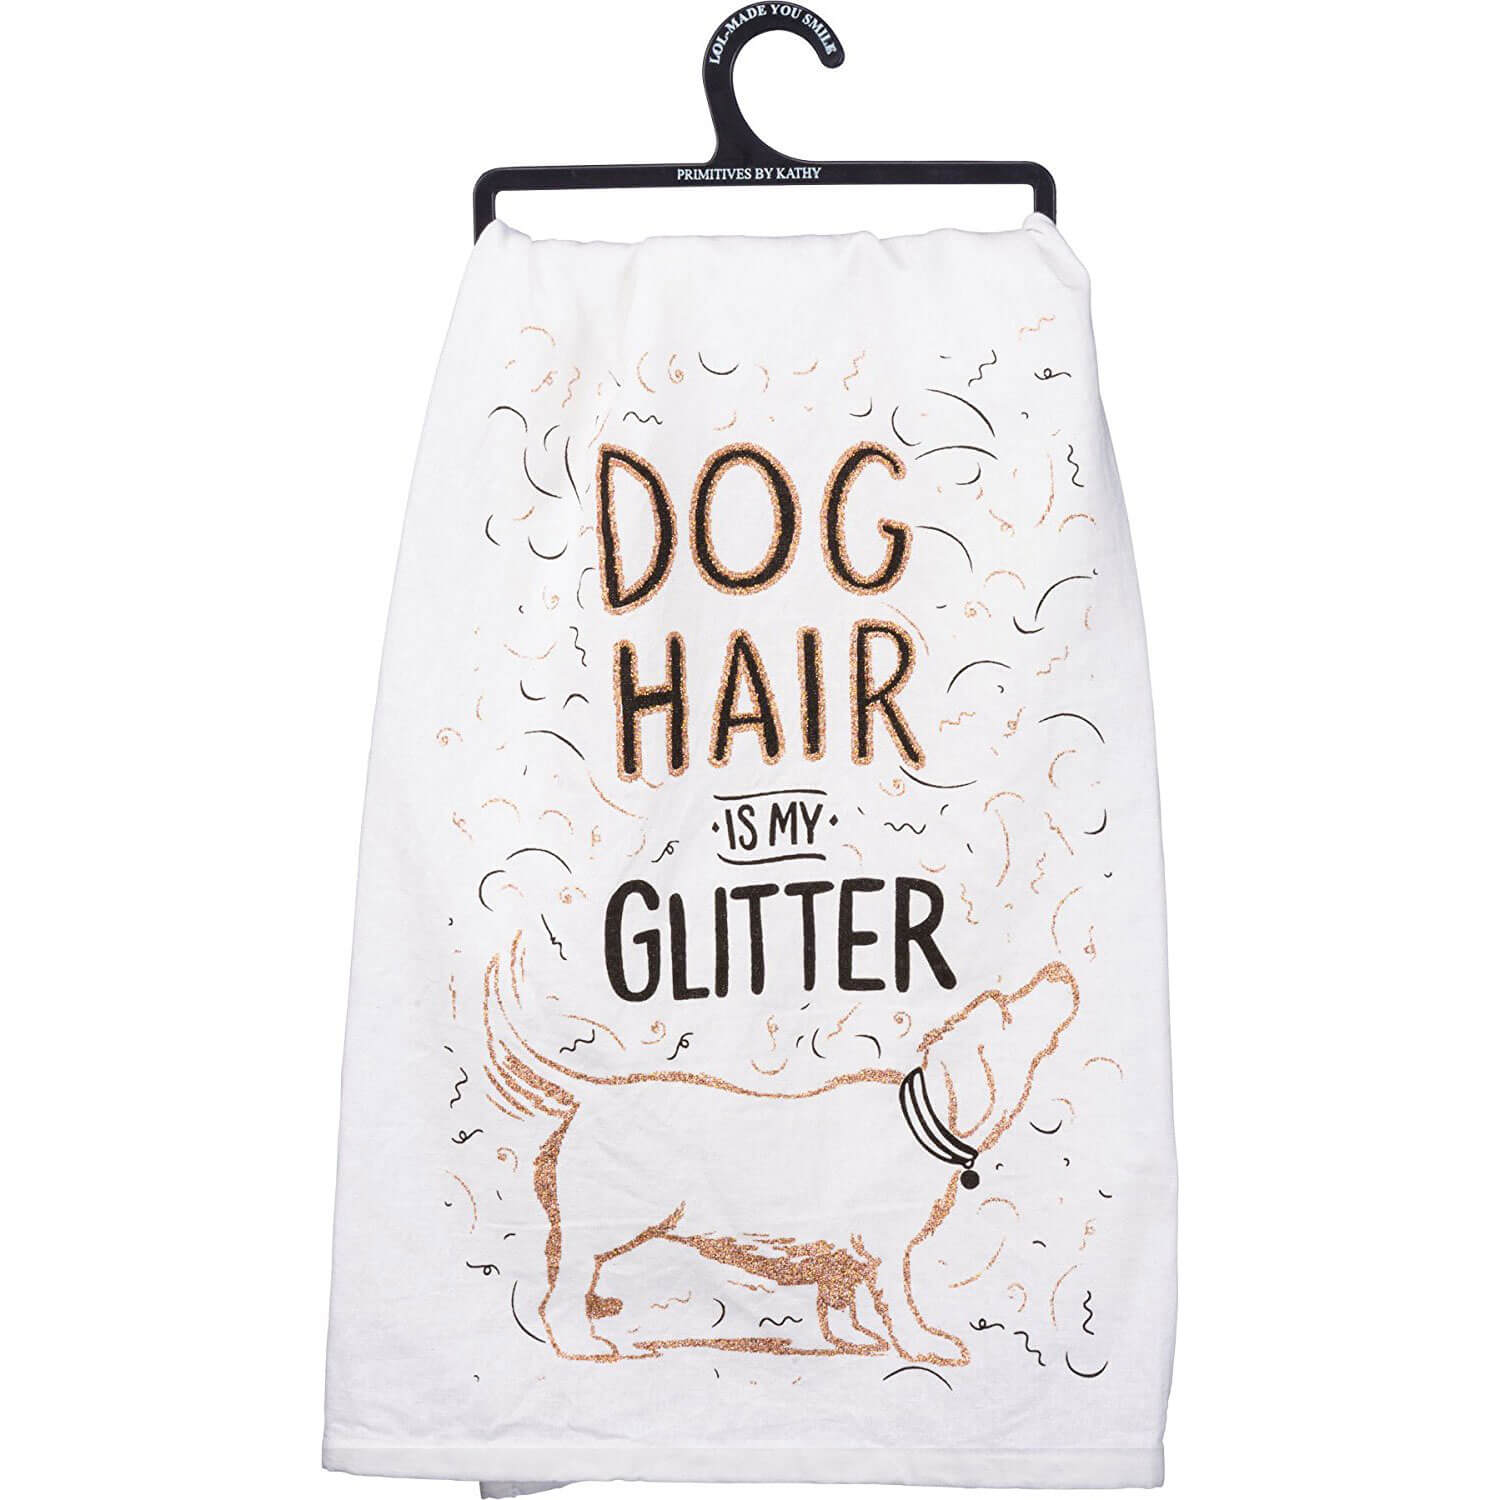 dog-hair-glitter-towel